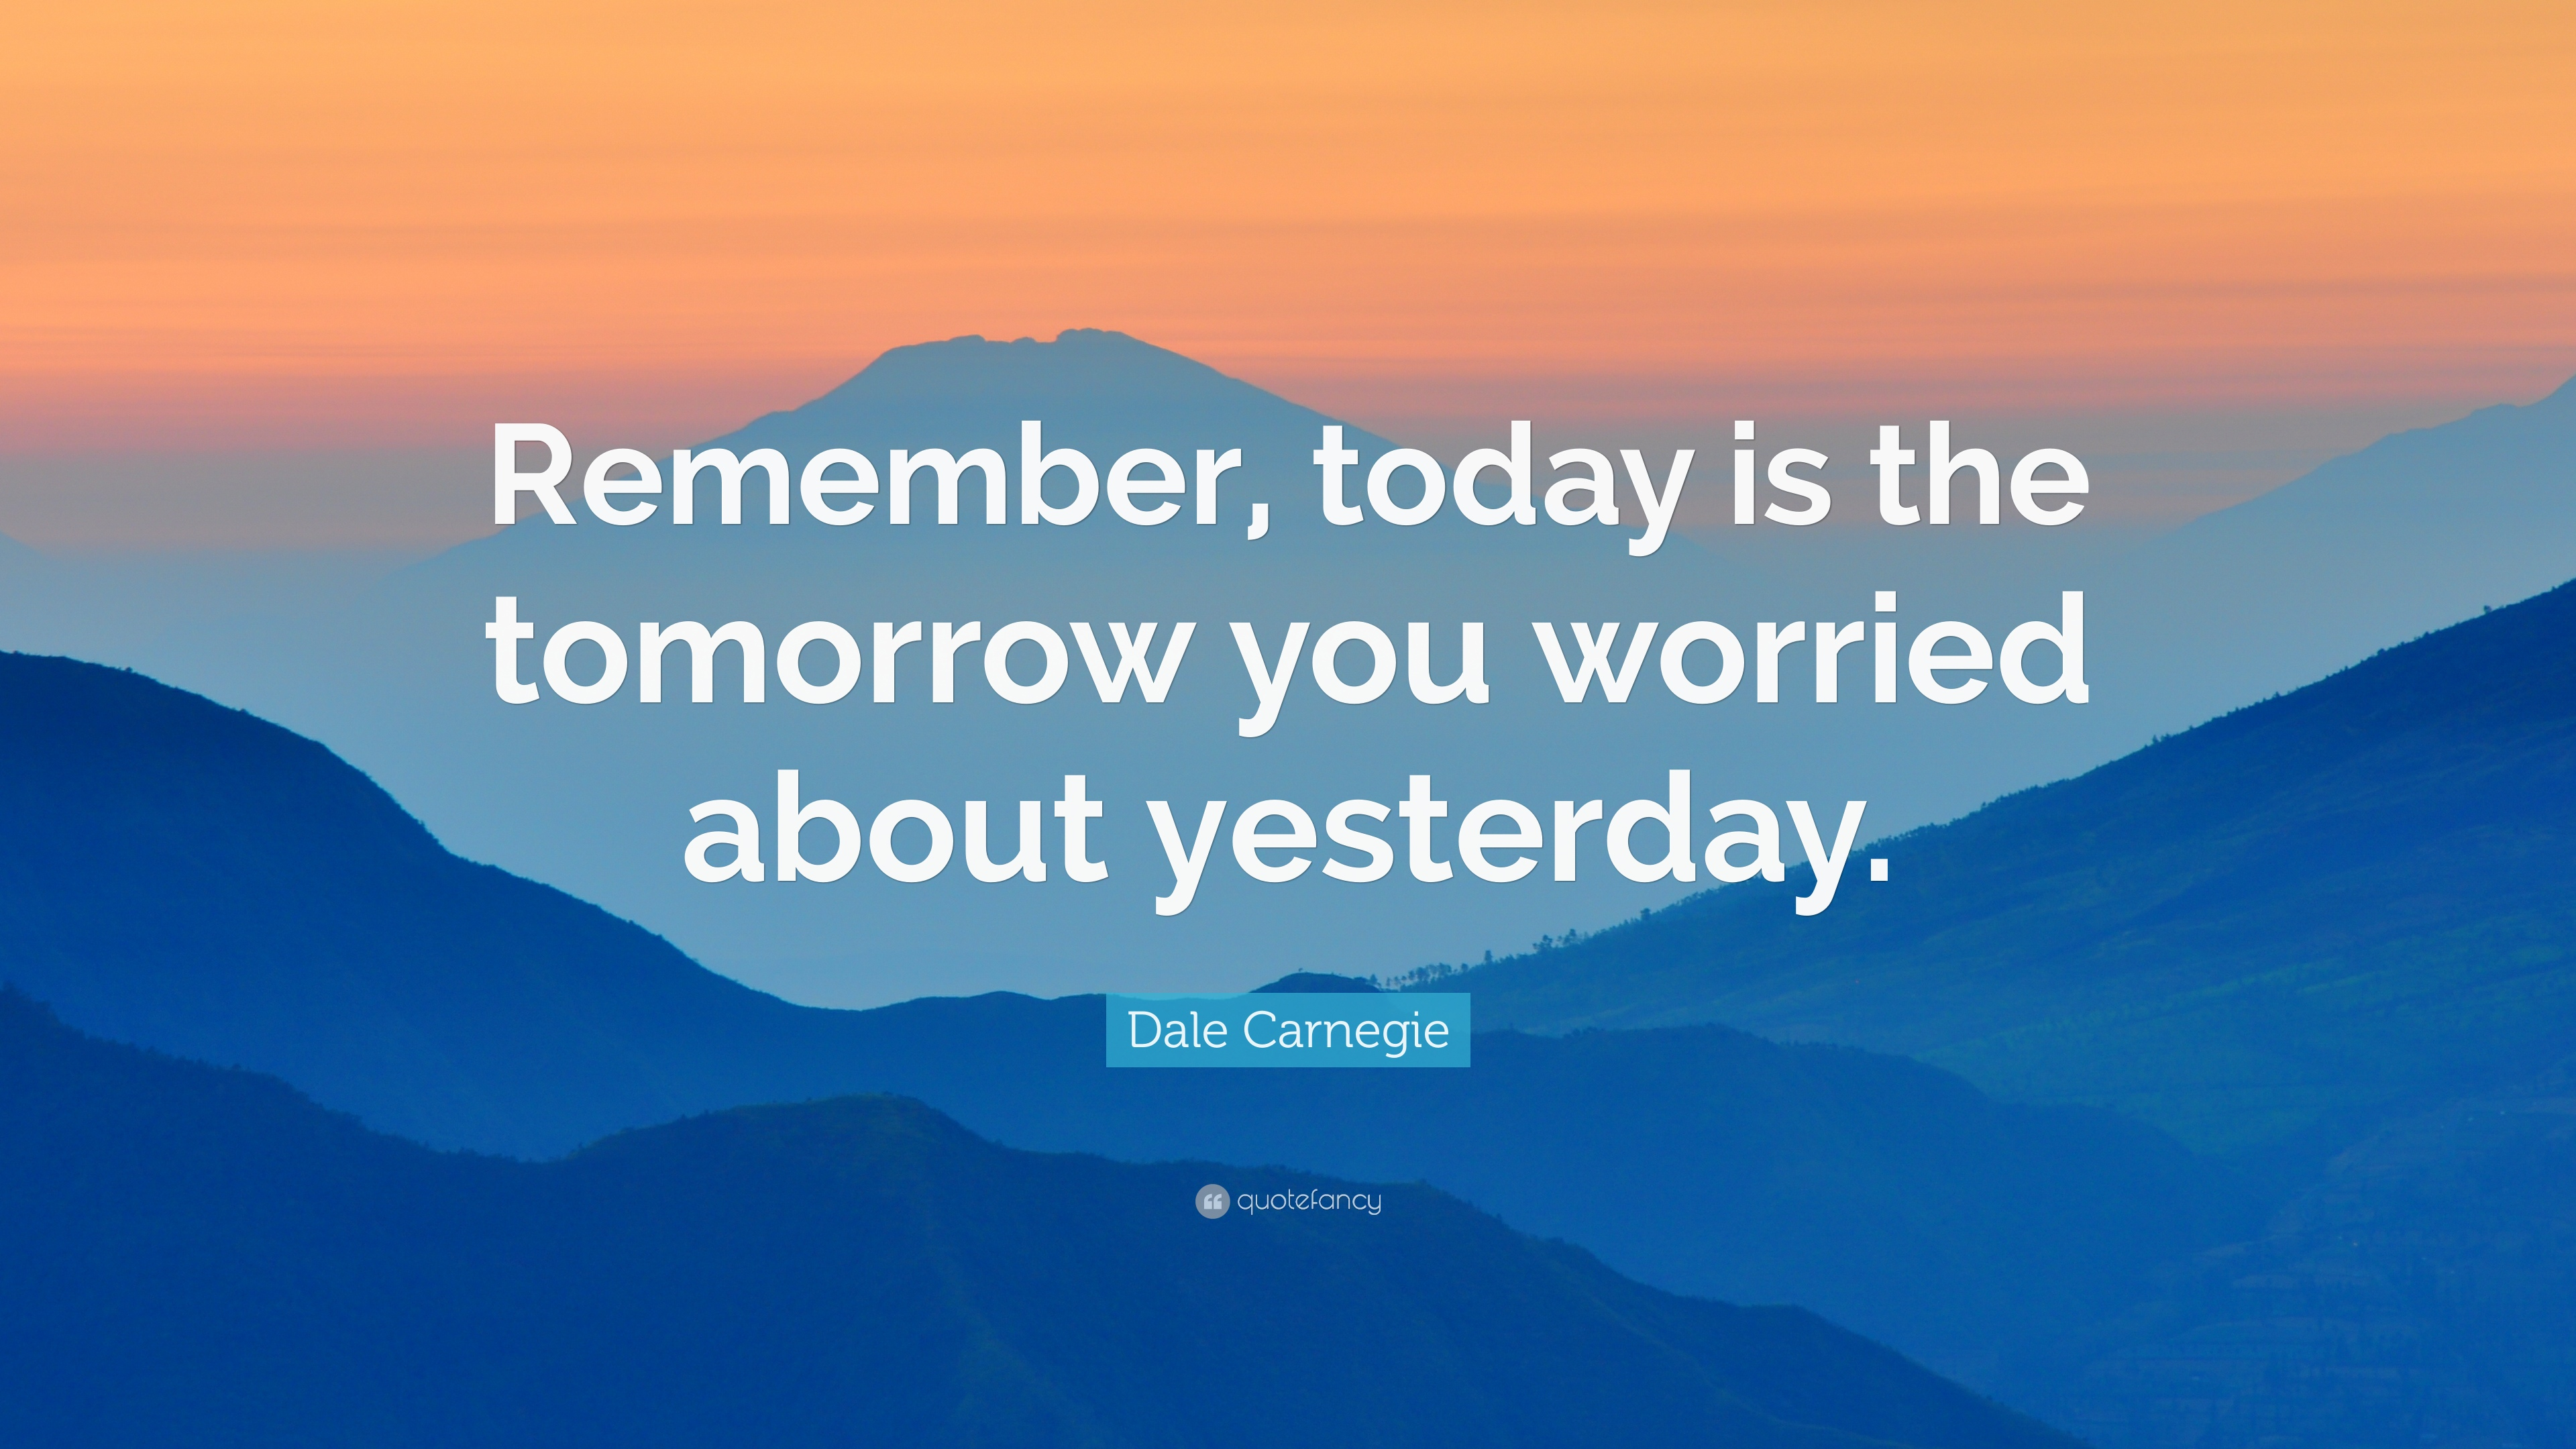 today is the tomorrow we worried about yesterday Dale carnegie — 'remember, today is the tomorrow you worried about yesterday.